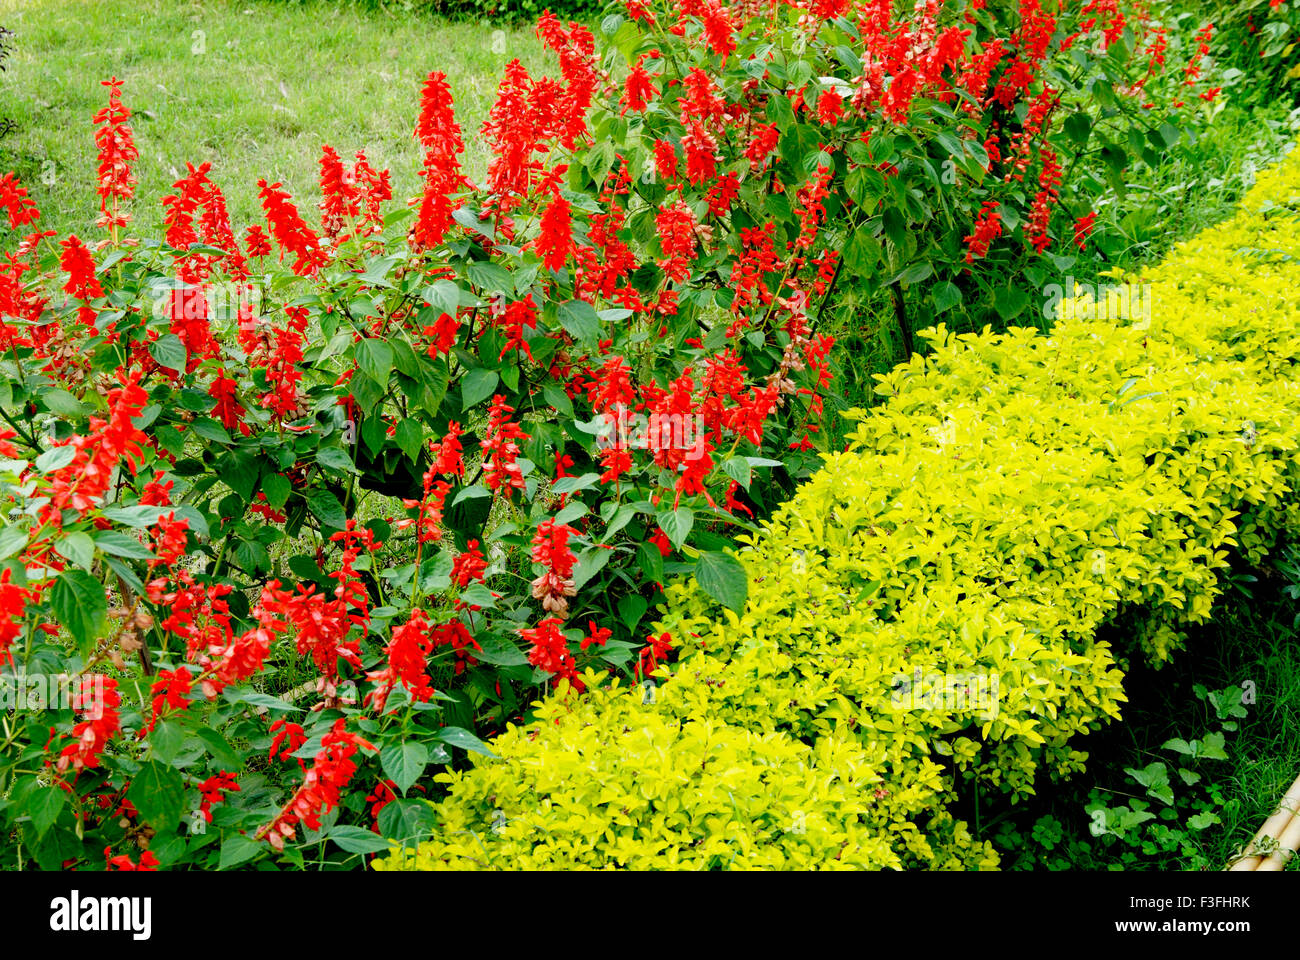 Beautiful flowers of india stock photos beautiful flowers of india beautiful flowers in garden india stock image izmirmasajfo